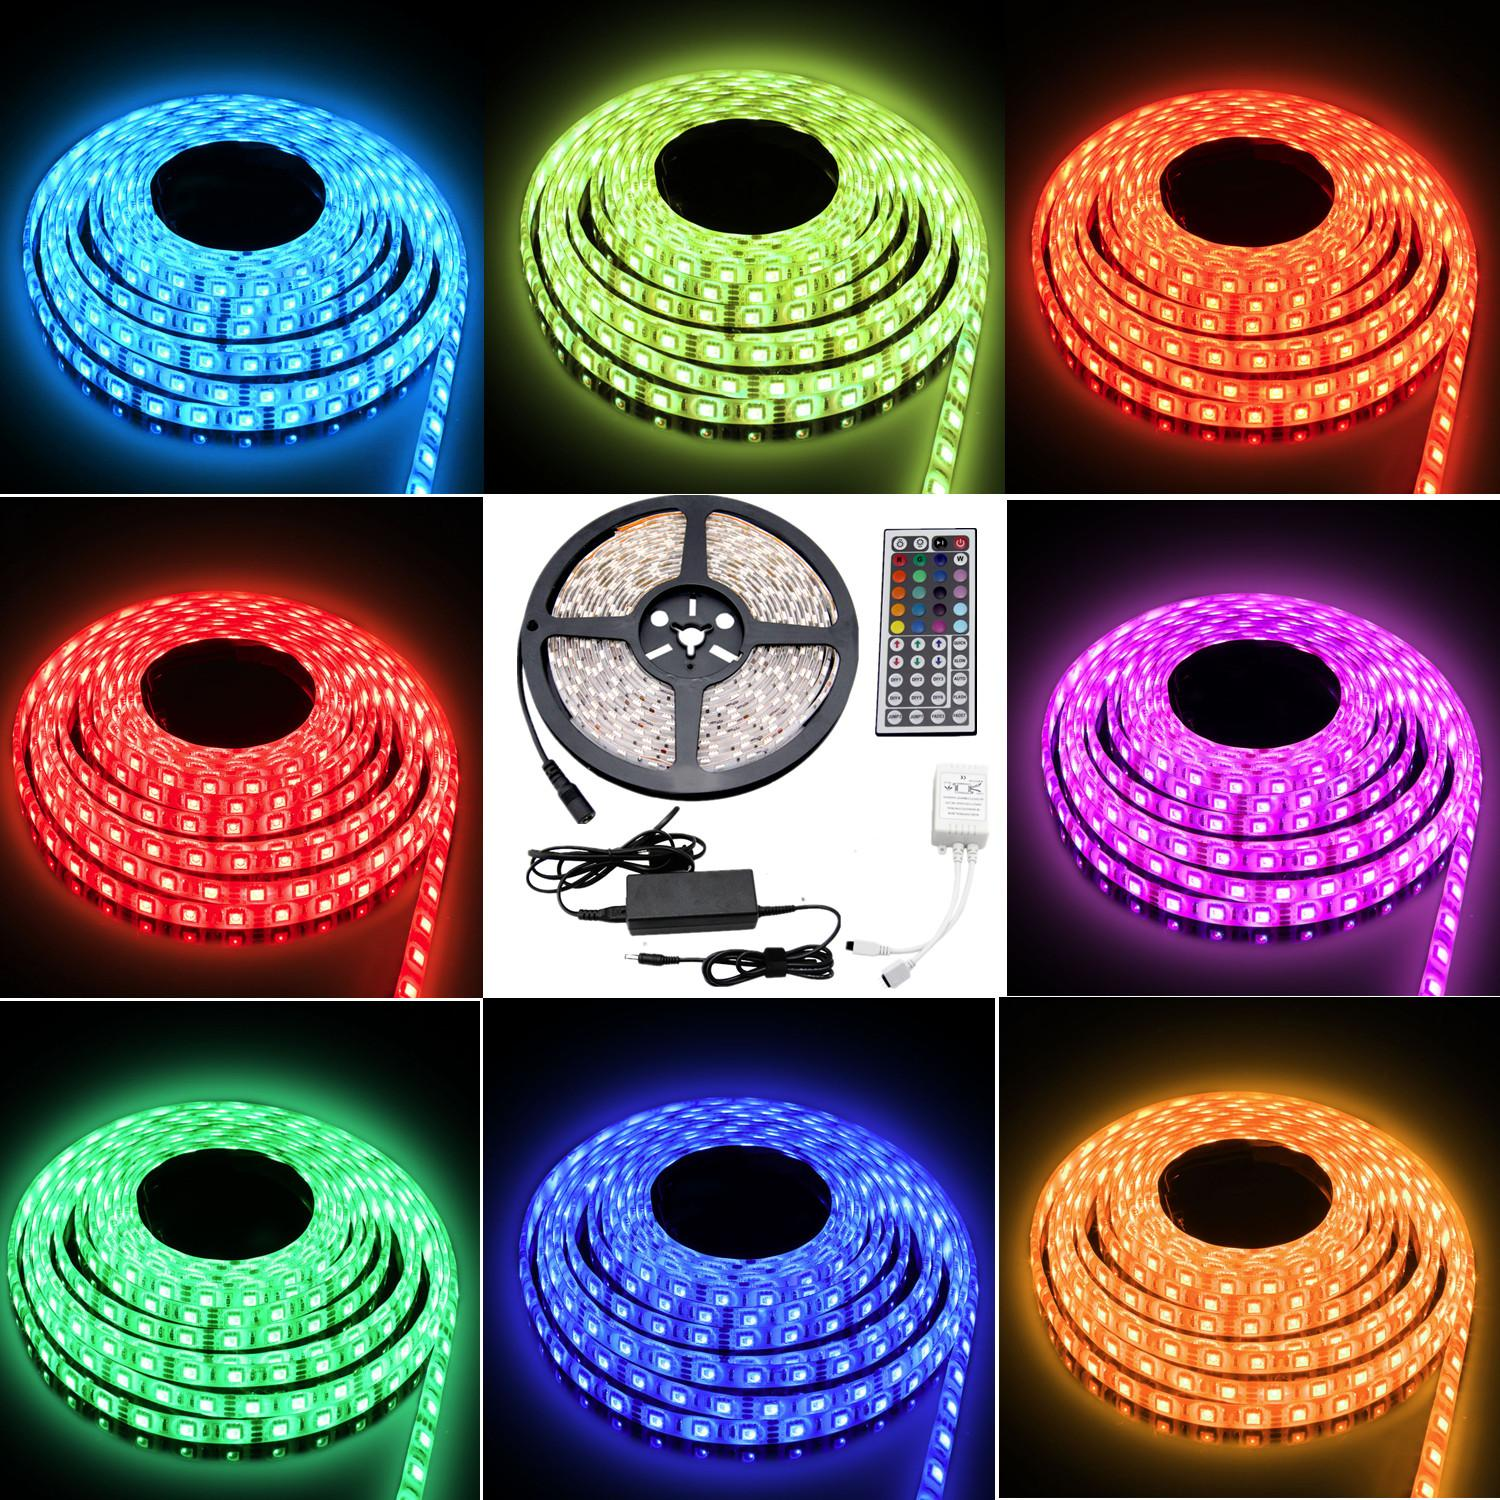 Besdata 164ft 5m waterproof rope lights 300 led 5050 smd color besdata 164ft 5m waterproof rope lights 300 led 5050 smd color changing redgb12v 5a power supply44 key remoteir controller muliti color 2018 from aloadofball Image collections